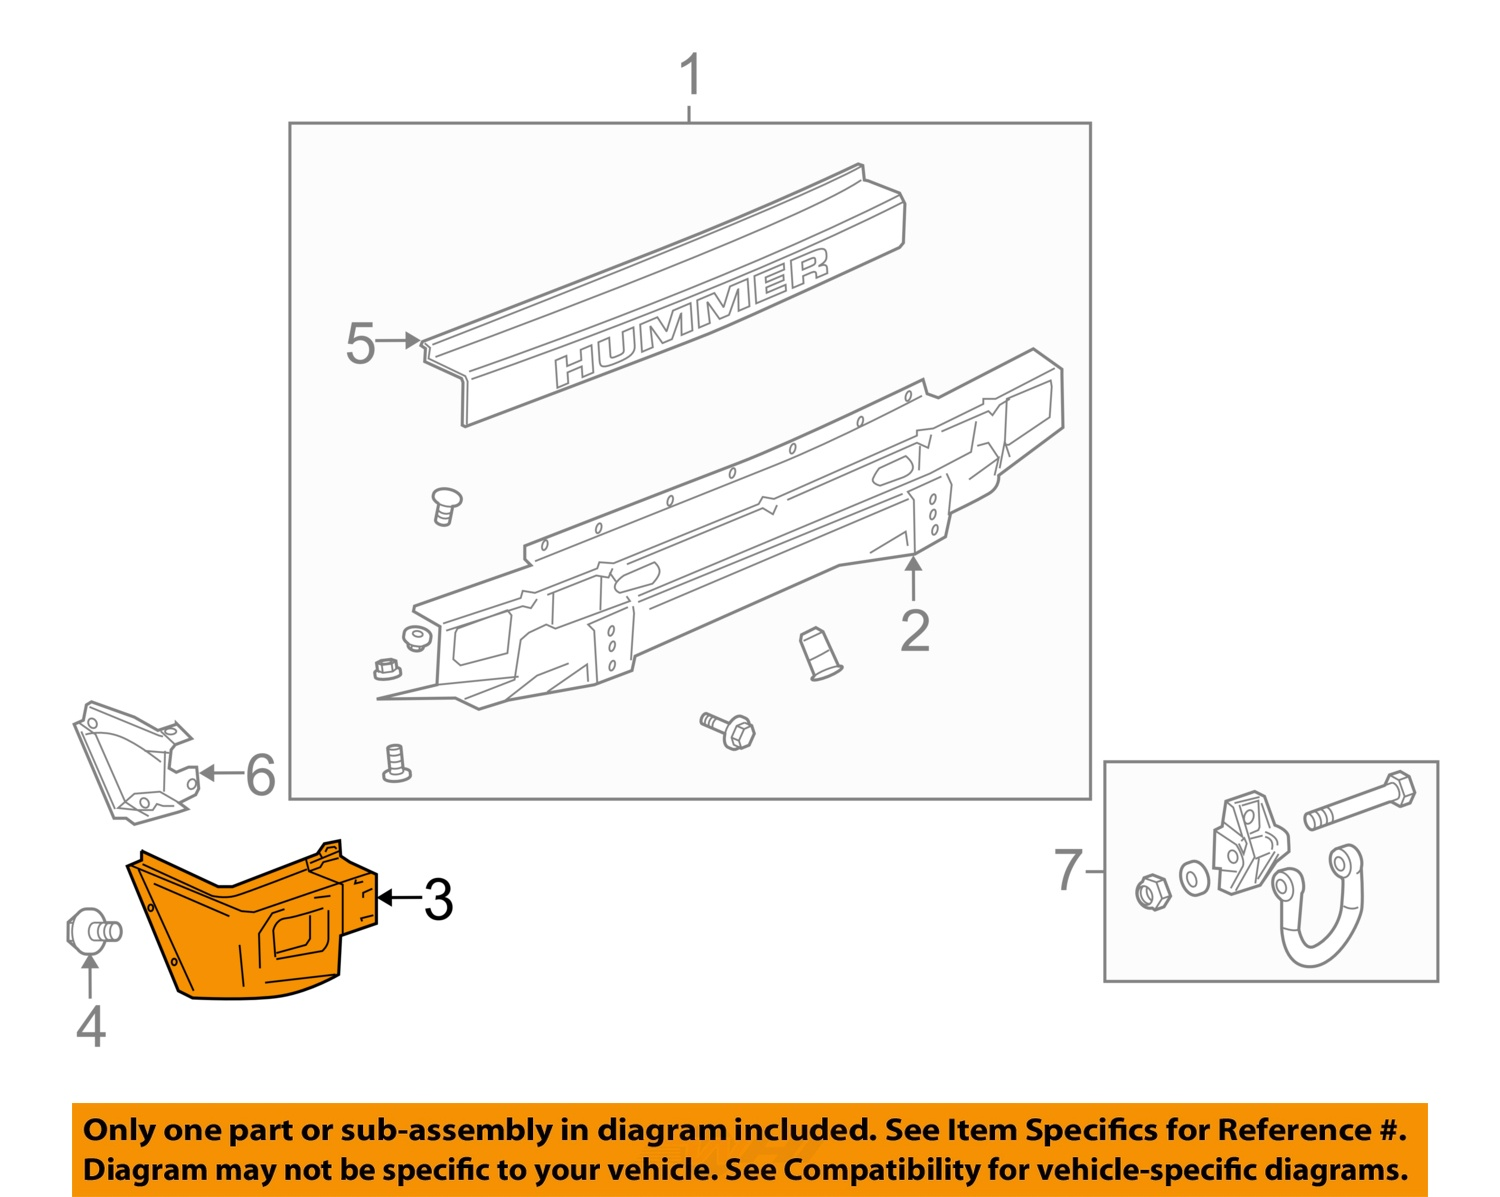 Hummer gm oem 03 05 h2 rear bumper end cap right 12335666 ebay 3 on diagram only genuine oe factory original item vanachro Images